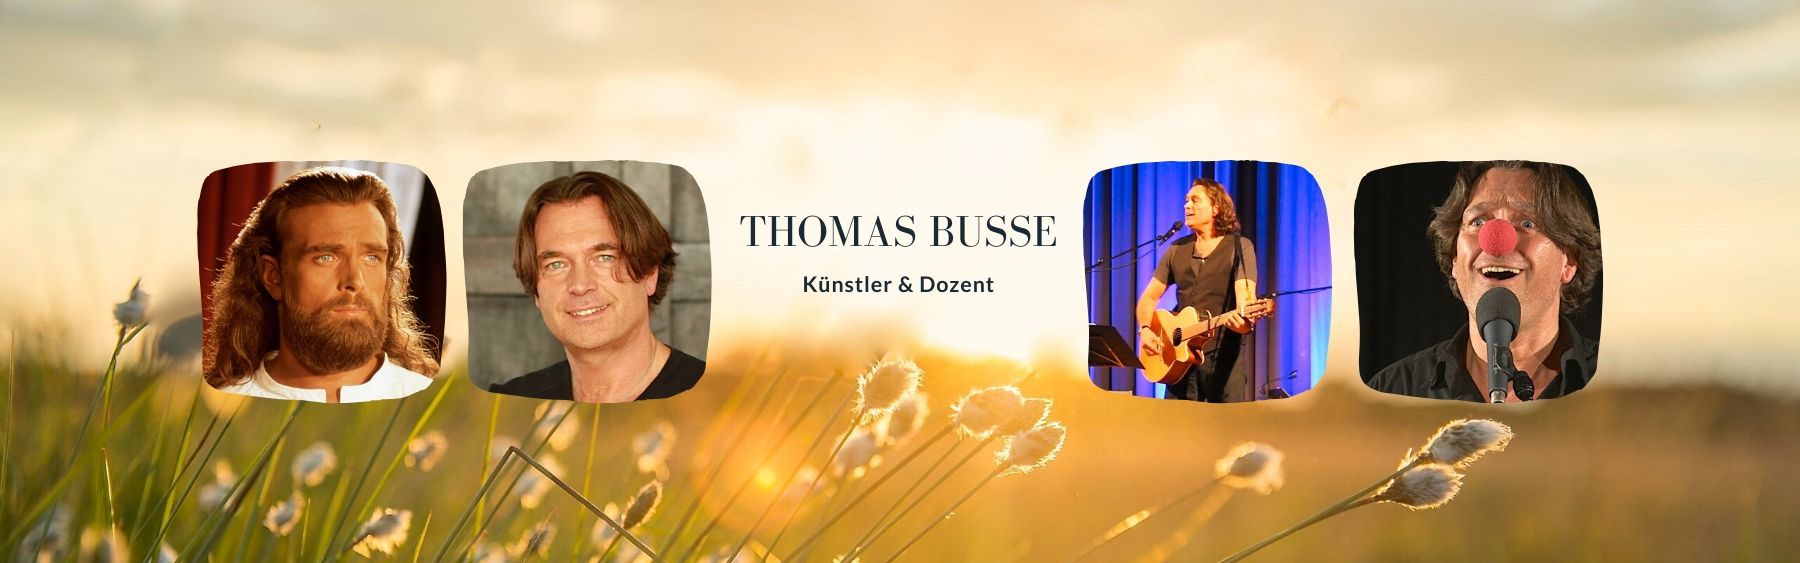 https://www.thomasbusse.de/wp-content/uploads/2020/01/HP-Header_Startseite.jpg